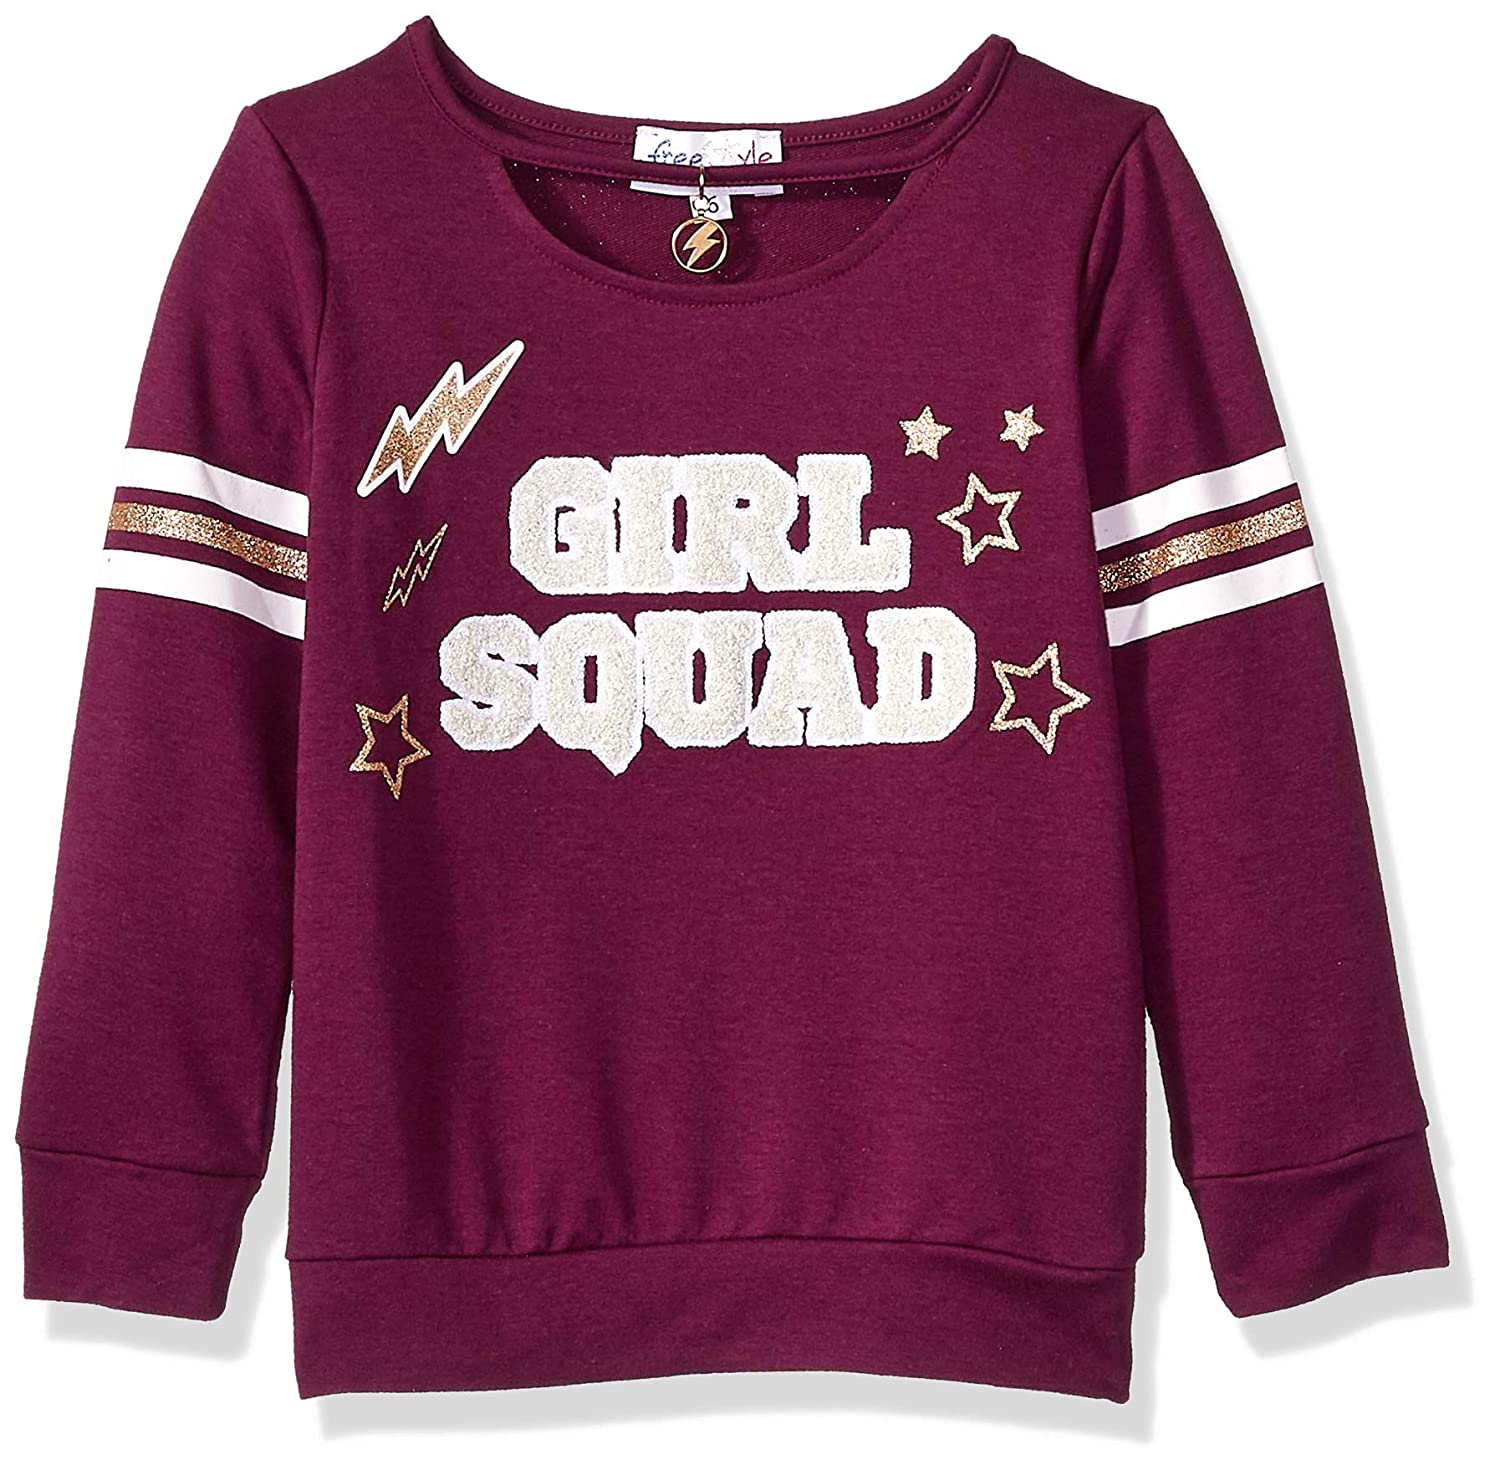 Freestyle Revolution Women's Little Girls' Fs4-54375-girl Squad French Terry Sweatshirt